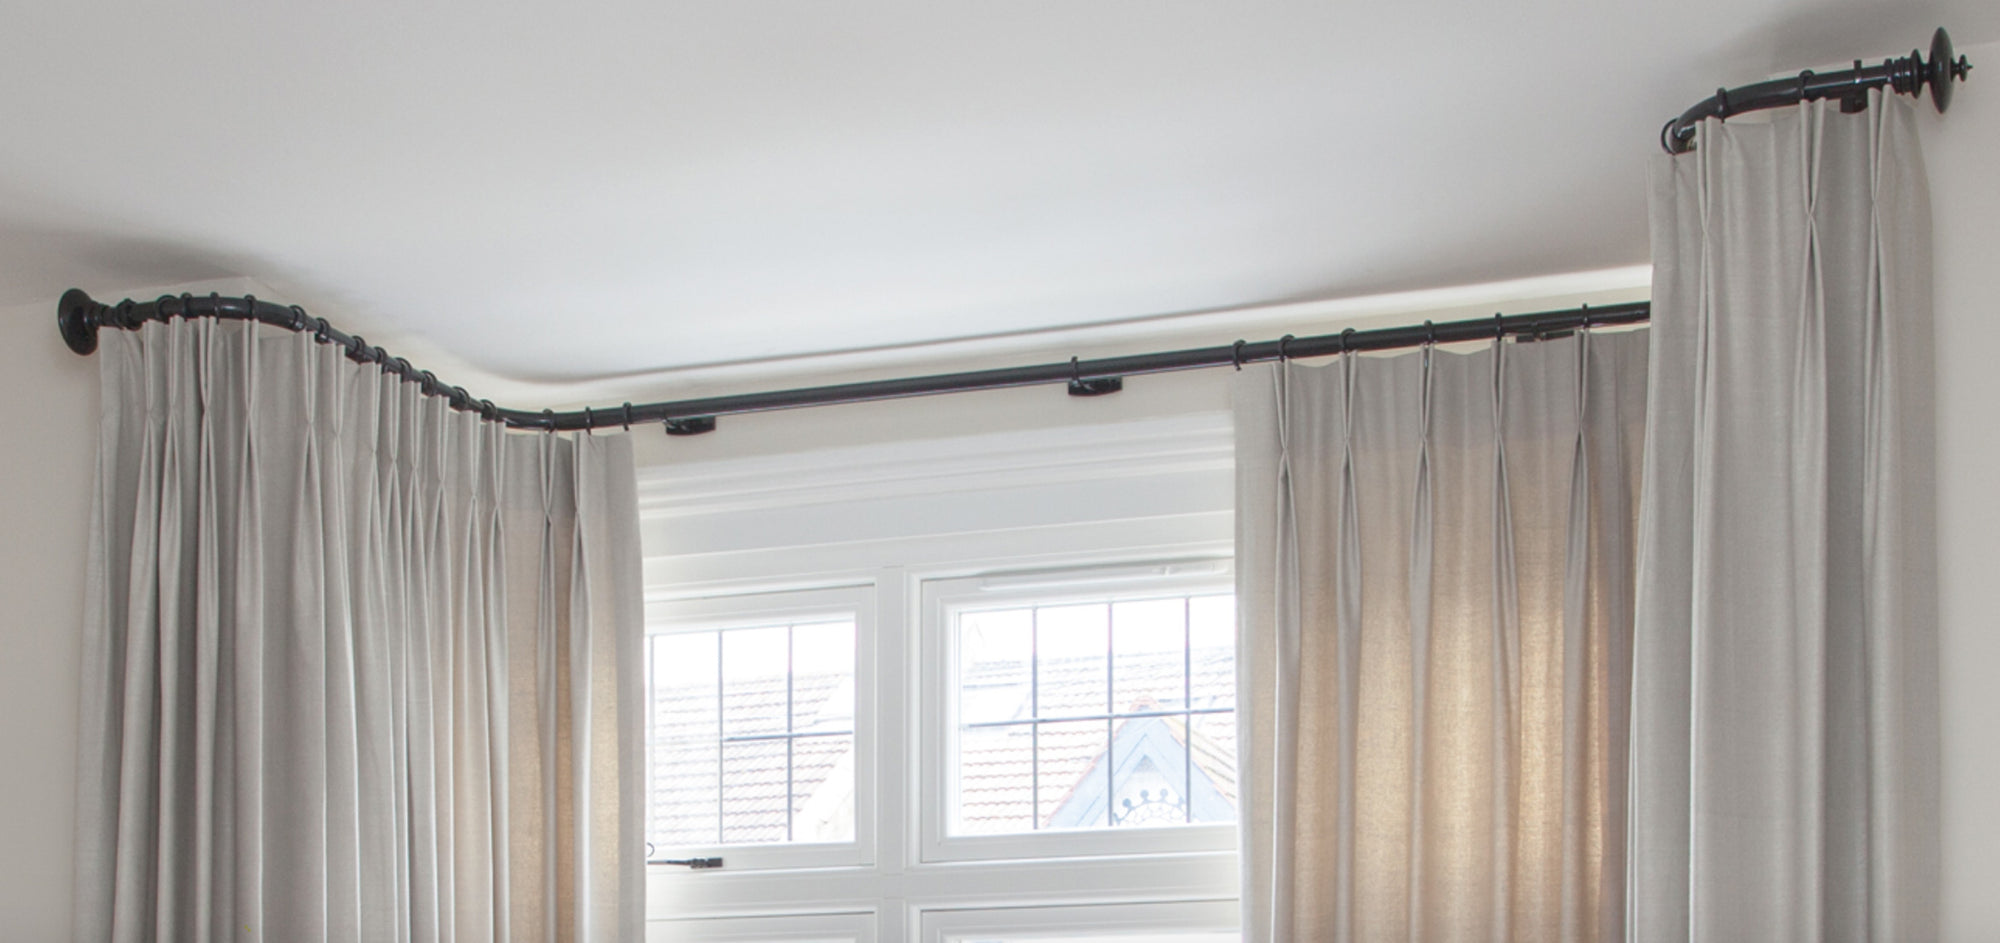 Bay Window curtain poles Bristol Paul Christian